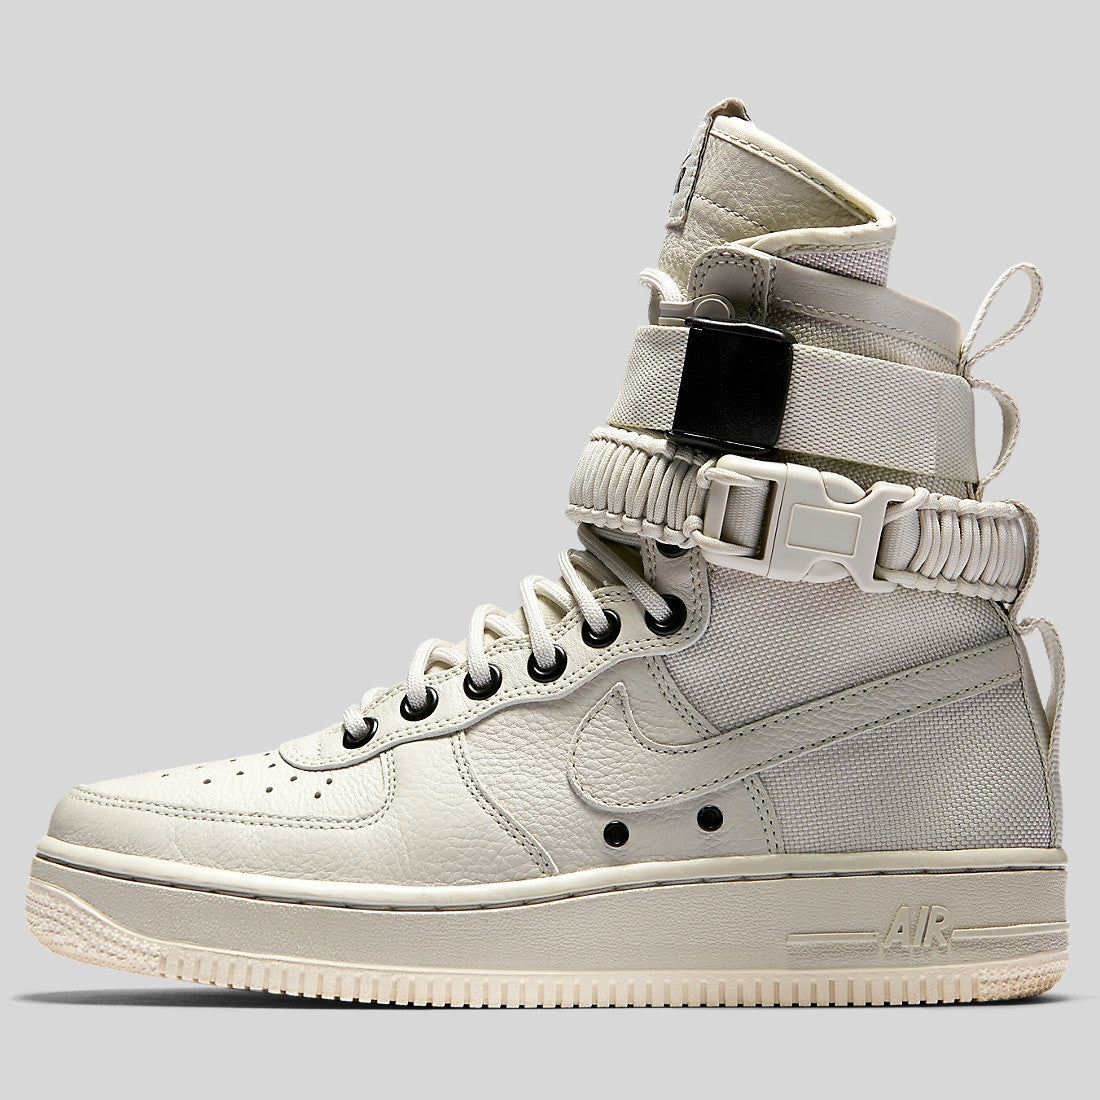 reputable site 6e1cc 6ac22 Nike Wmns SF AF1 Special Field Air Force 1 Light Bone Sail. Item Number  857872-001